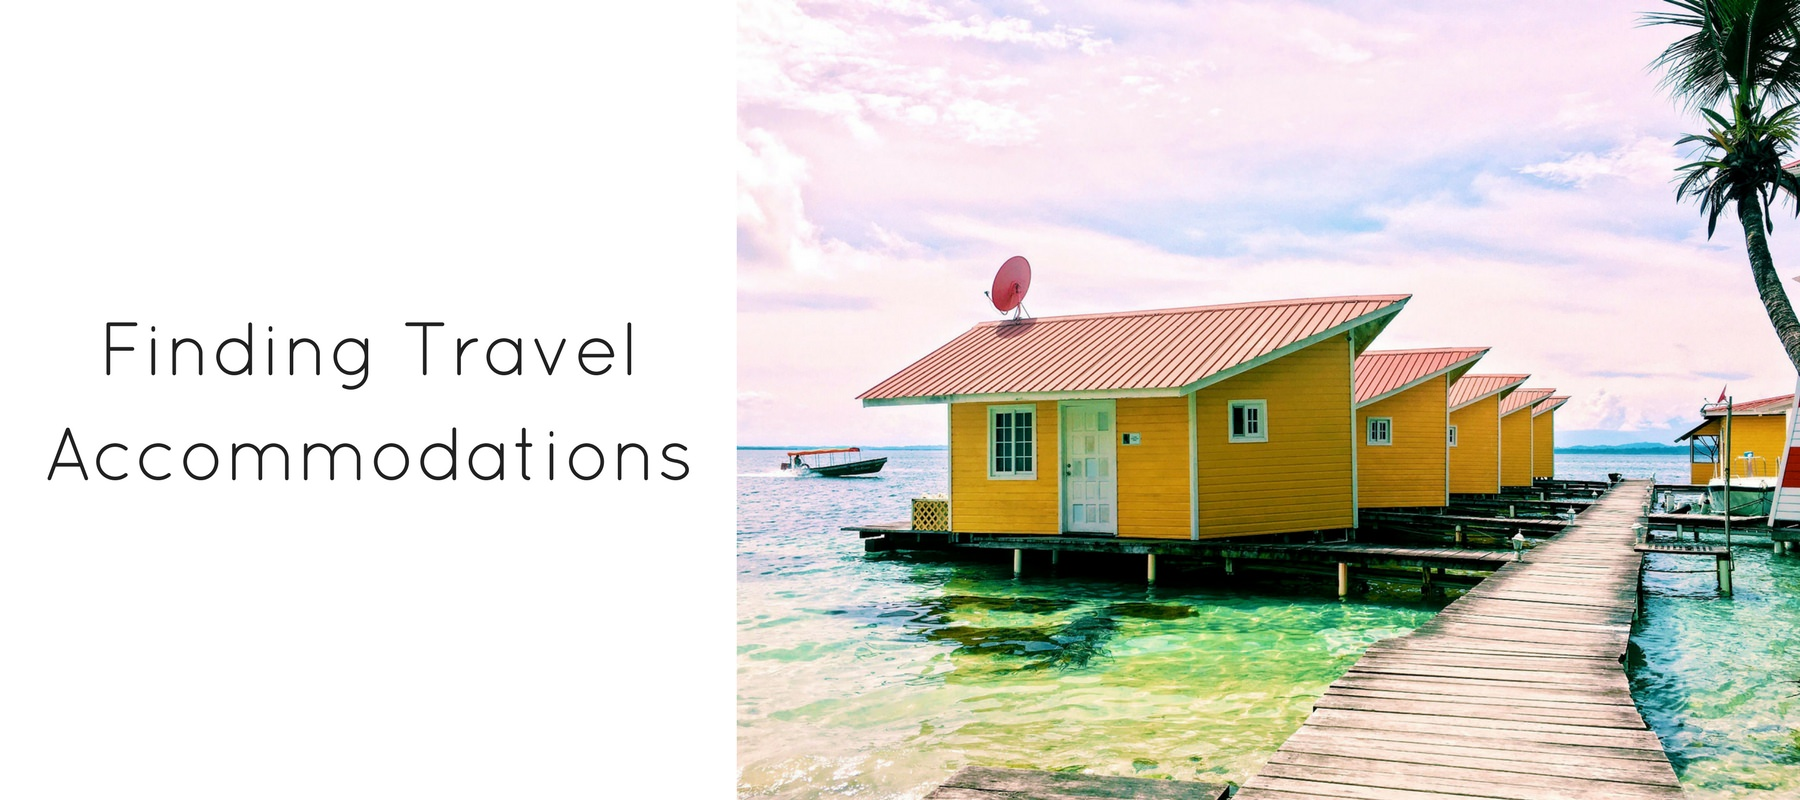 Finding Travel Accommodations - Authentic Traveling